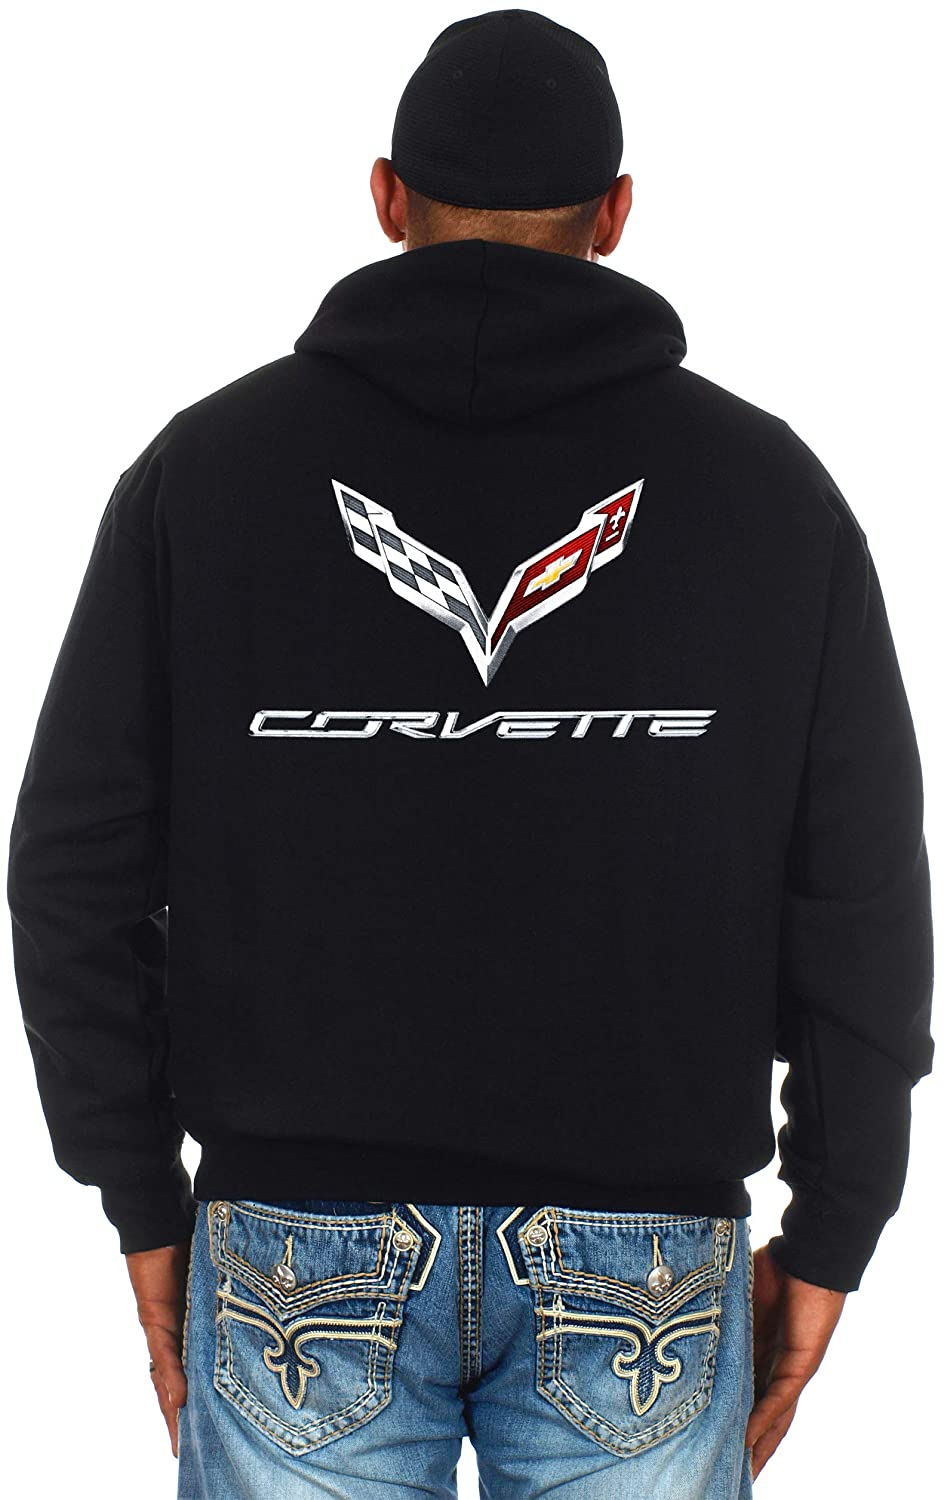 JH Design Chevy Corvette C7 Zip-up Hoodie /& Corvette T-Shirt Combo Gift Set for Men